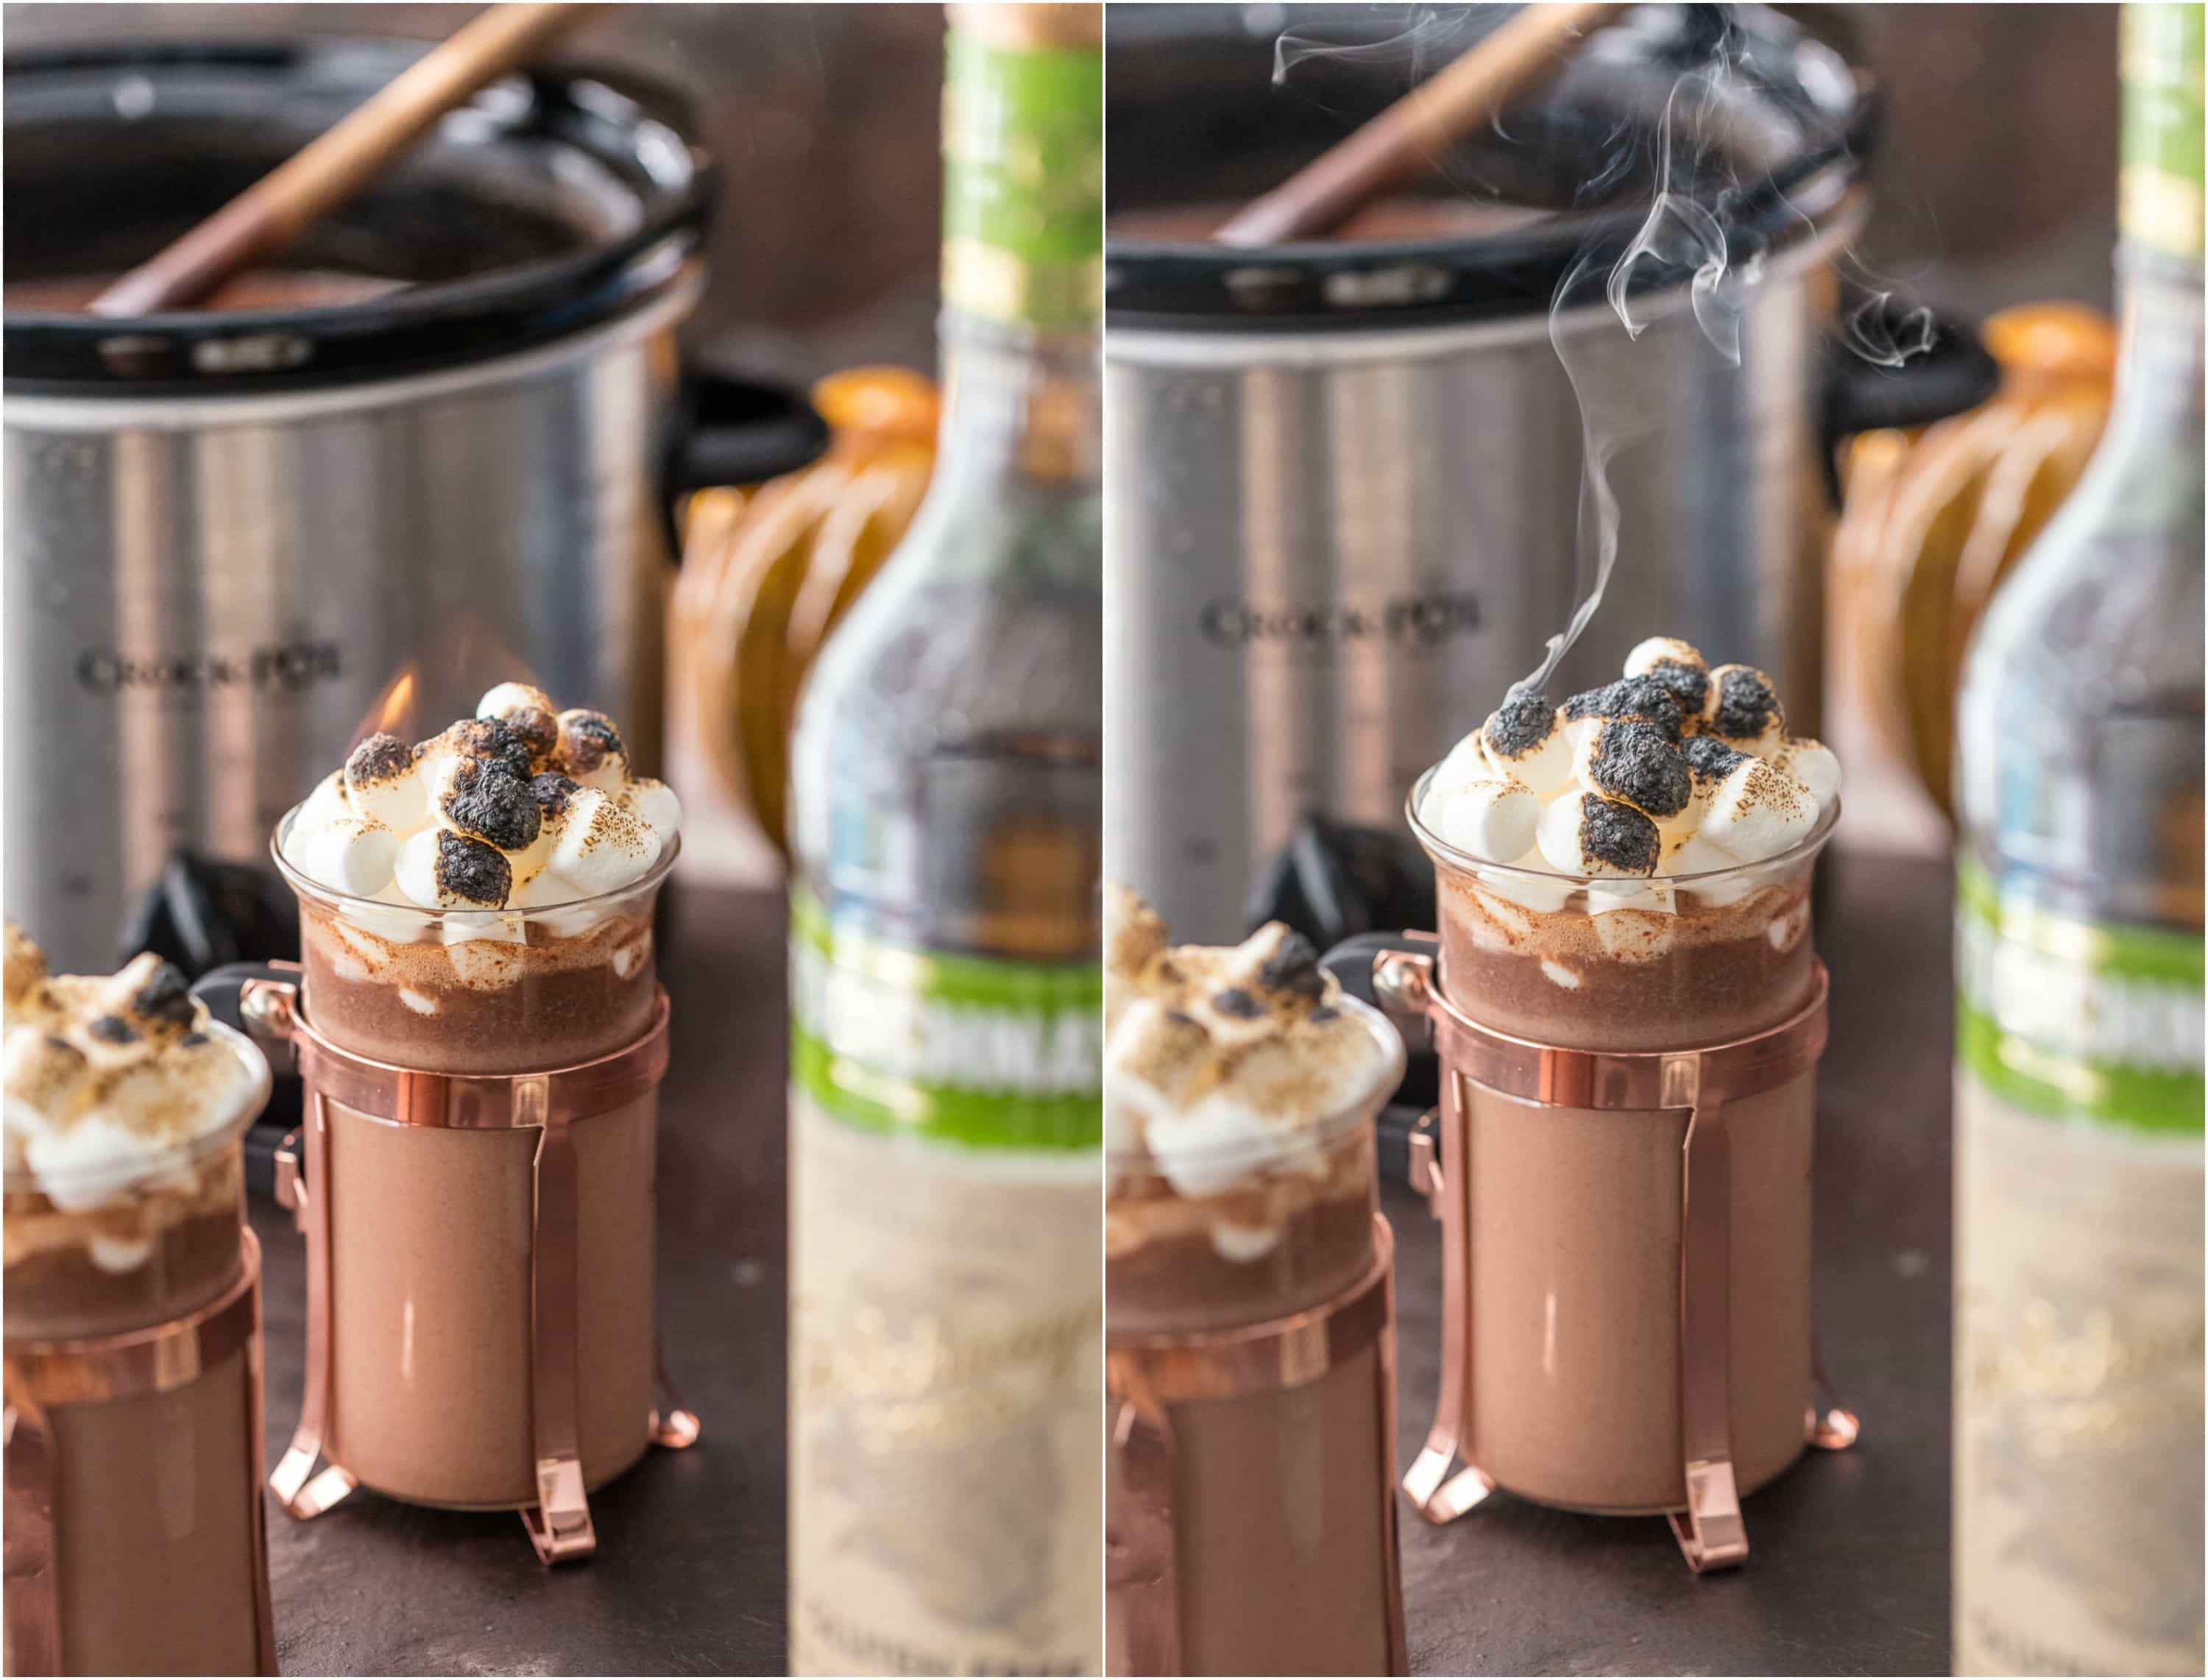 Spiked Hot Chocolate recipe next to a slow cooker and a bottle of vodka